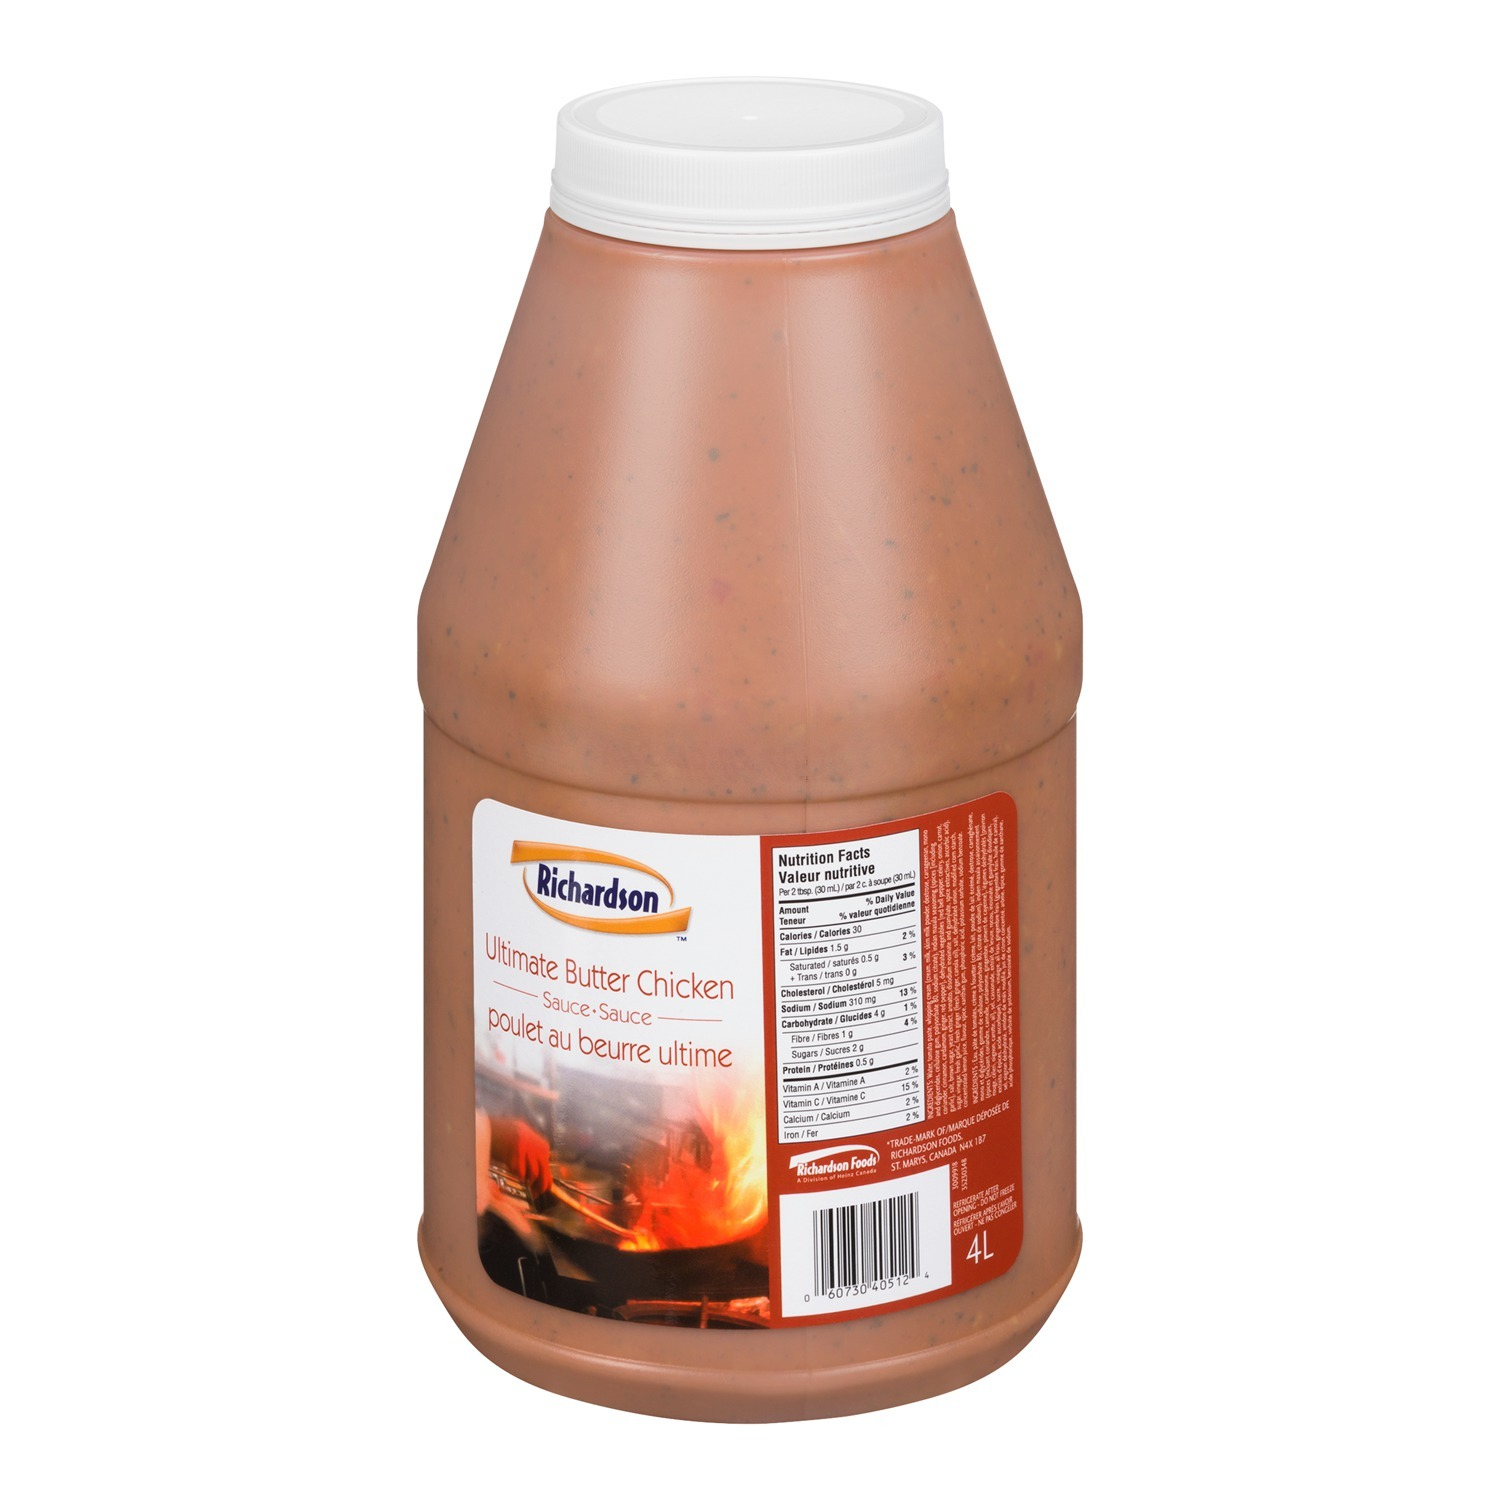 RICHARDSON Ultimate Butter Chicken Sauce 4L 2